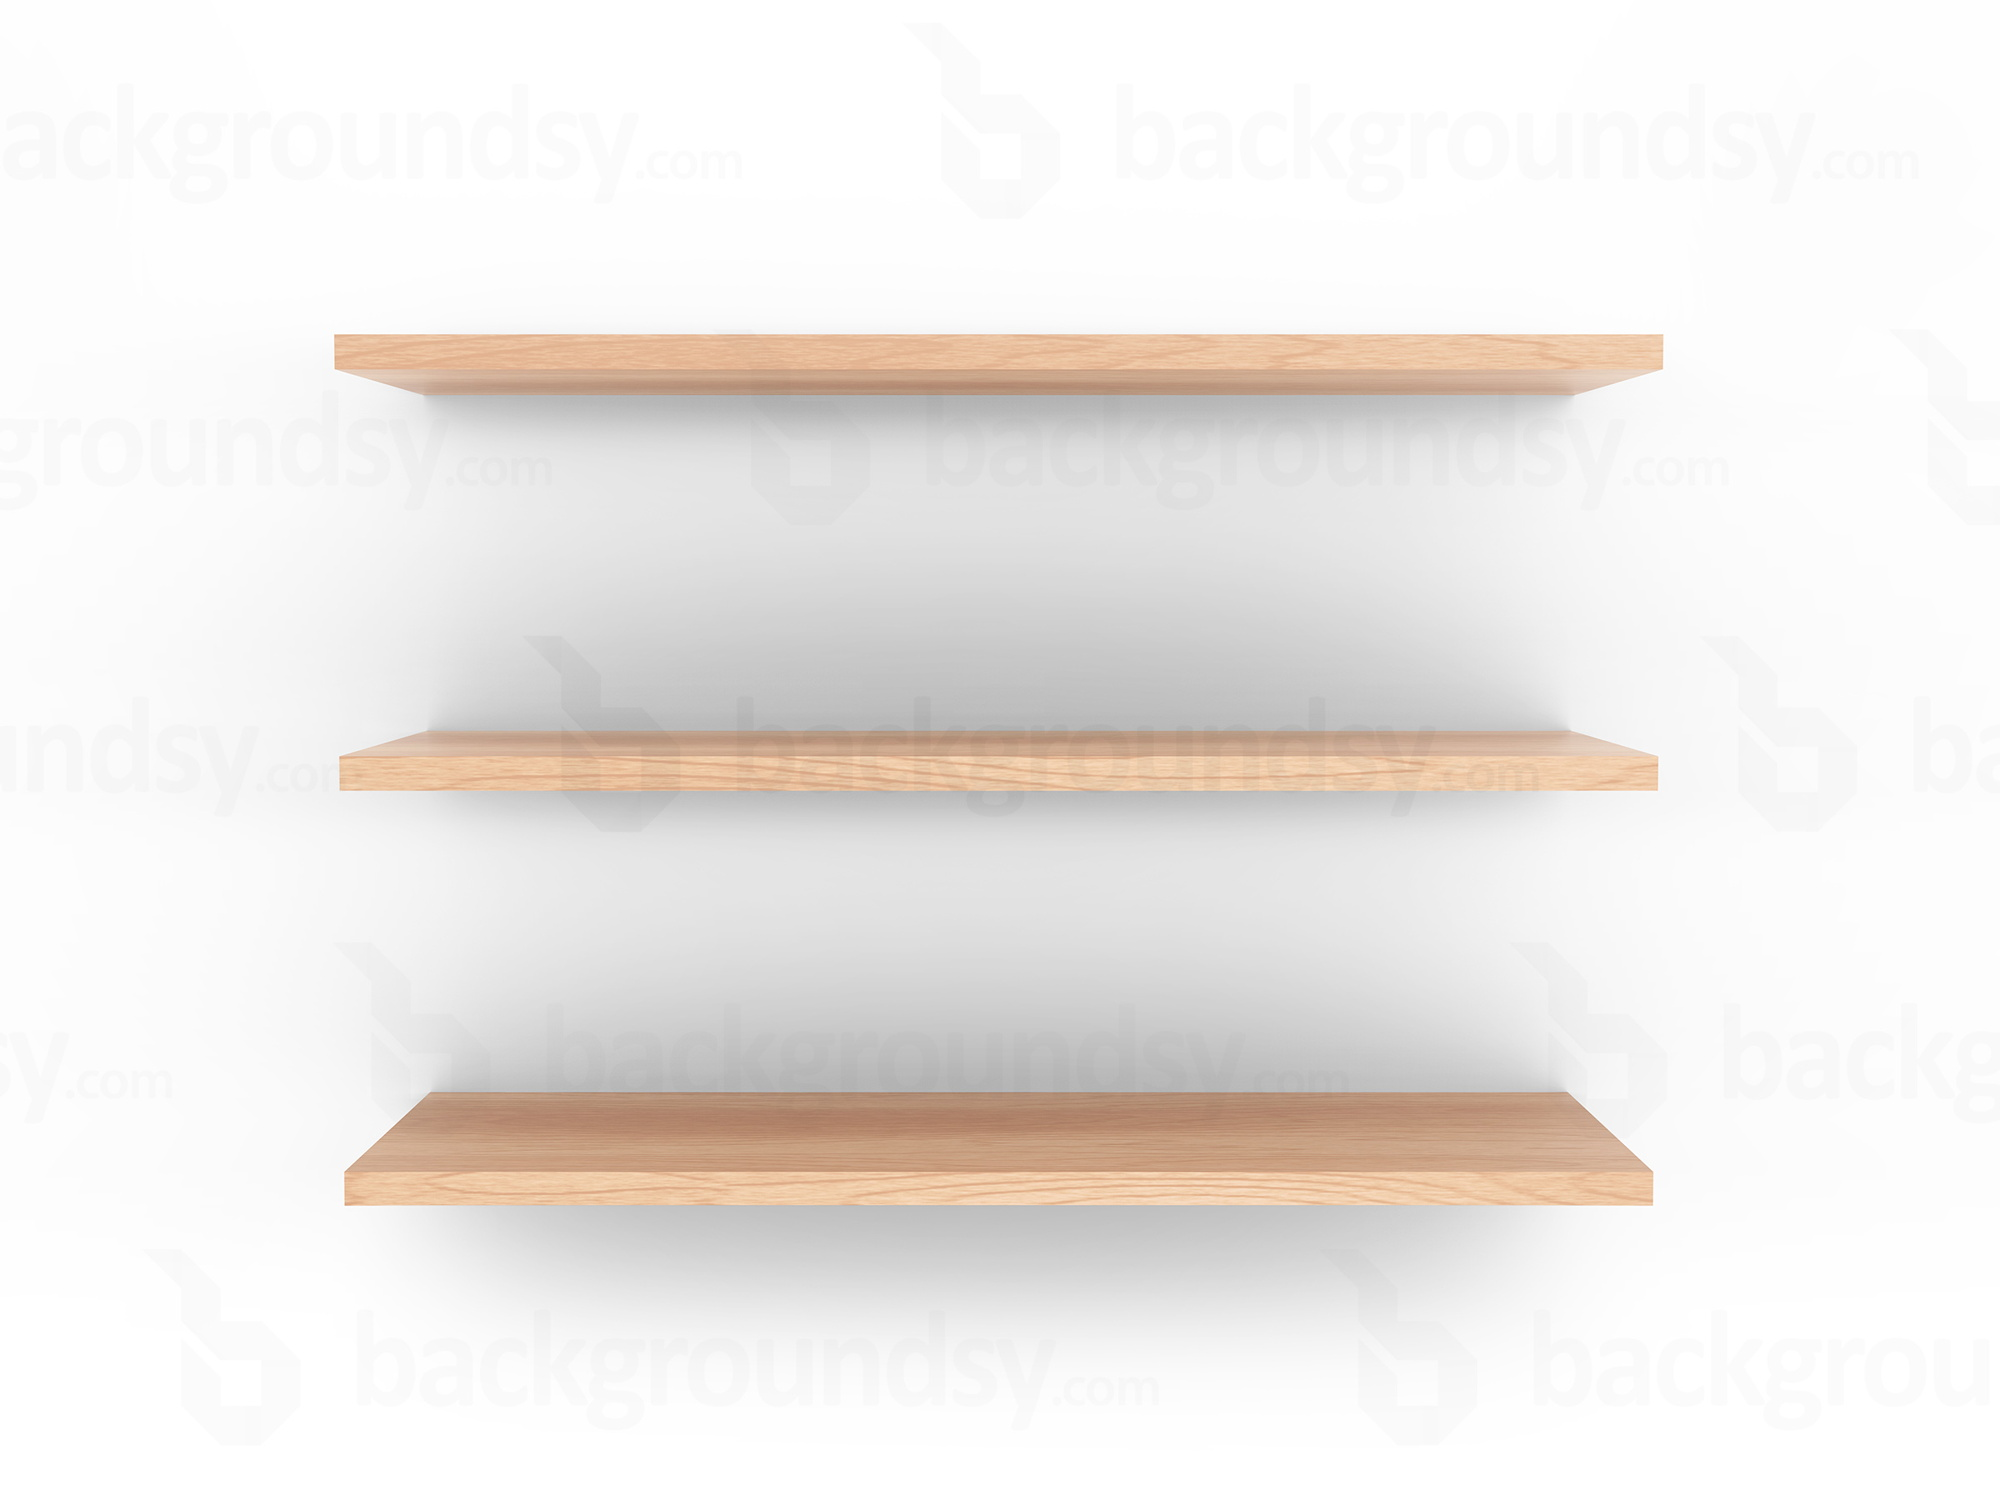 Superb img of Empty wooden shelf Backgroundsy.com with #9C612F color and 2400x1800 pixels